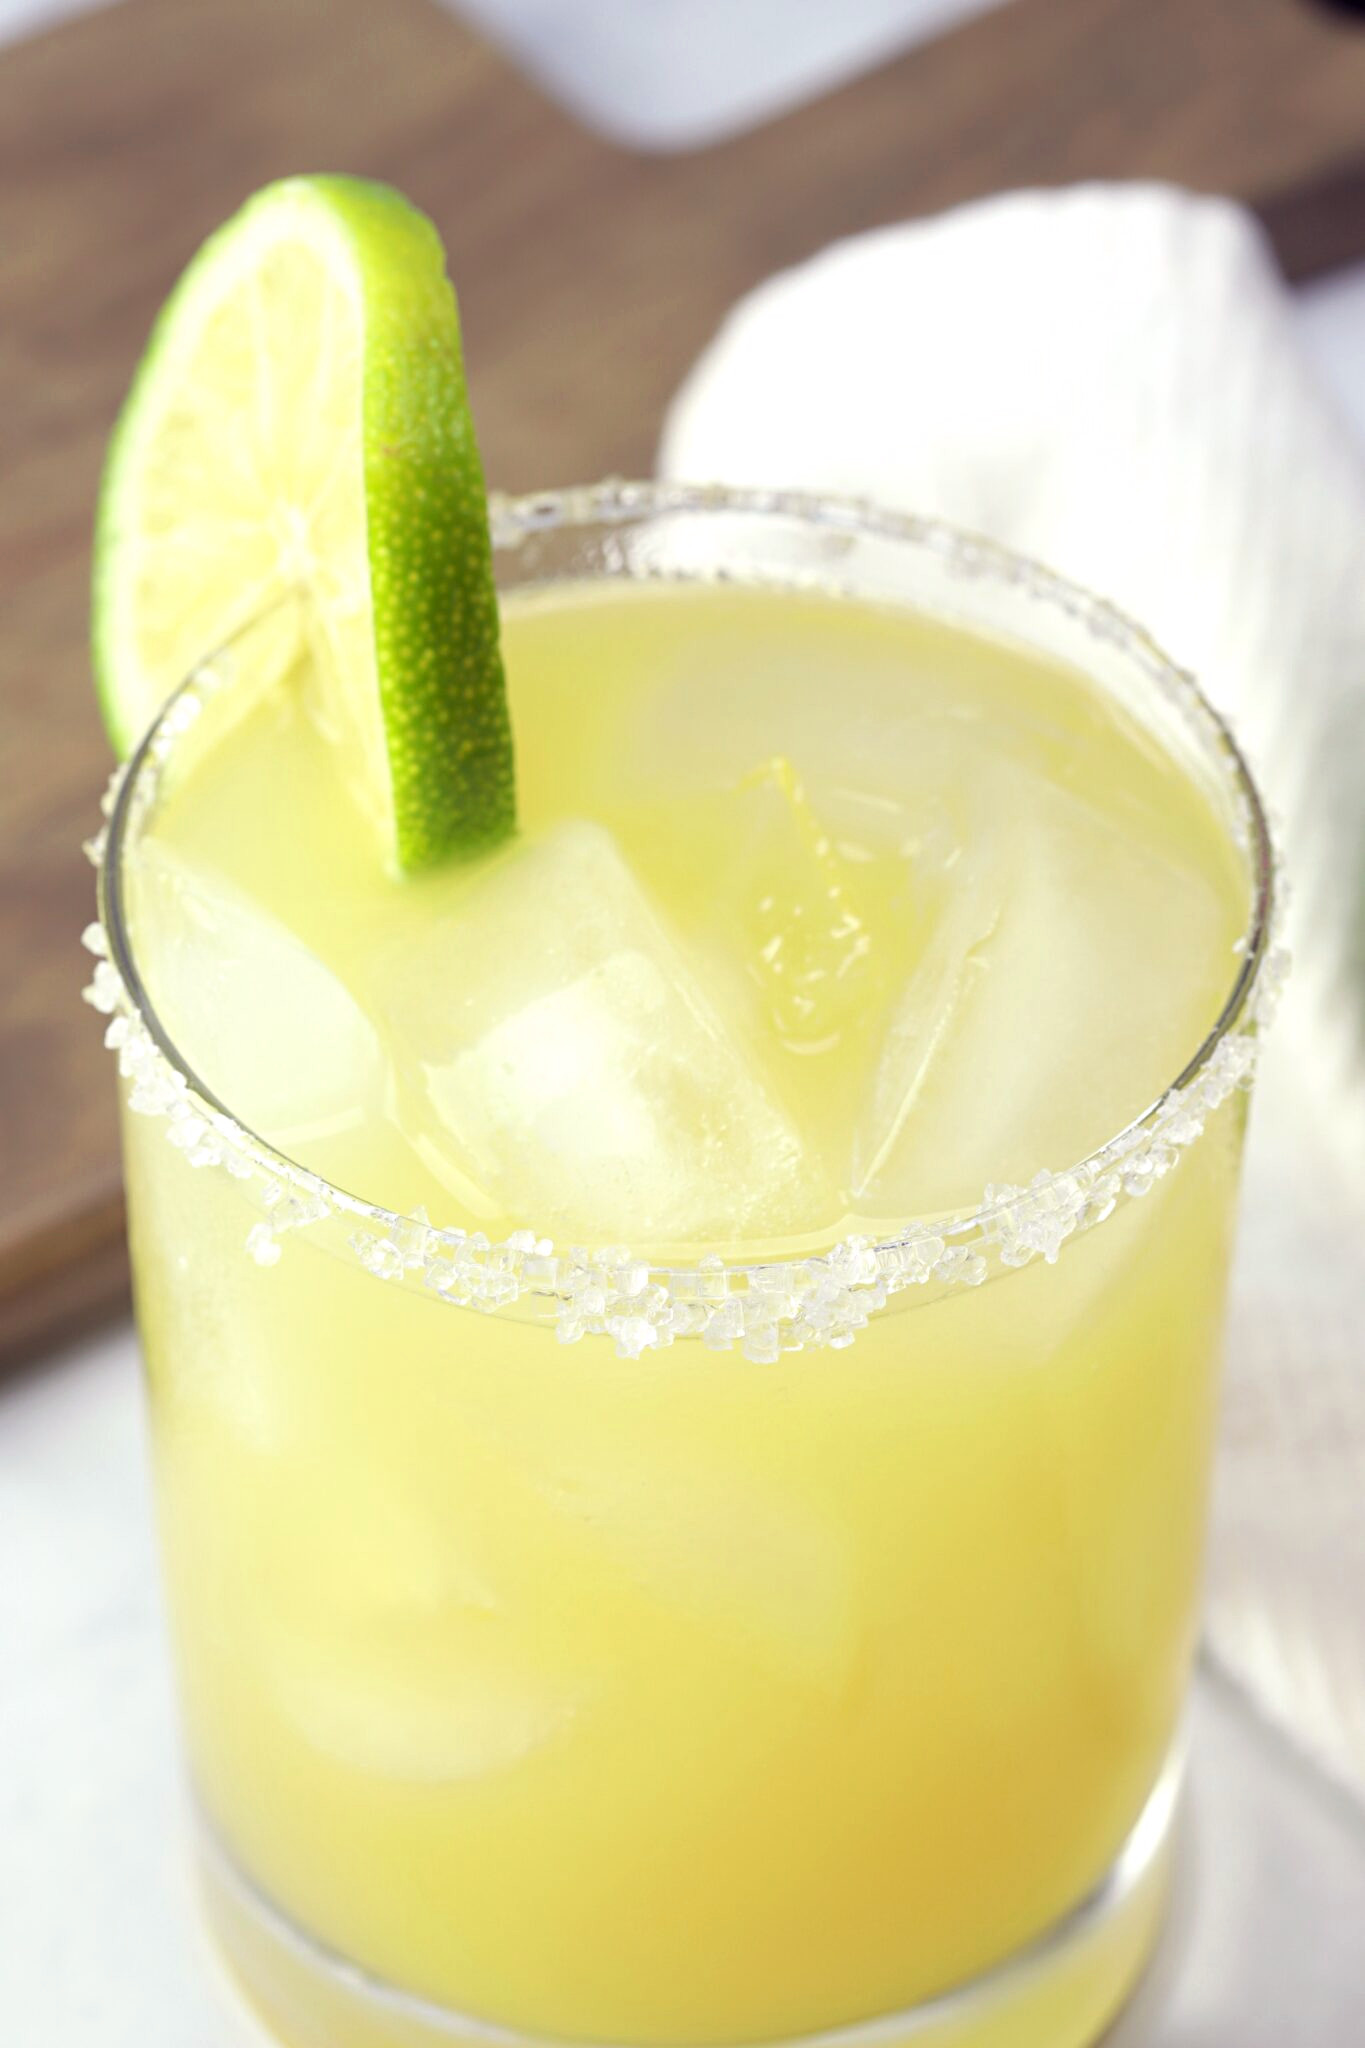 A yellow cocktail with salted rim and lime wedge.